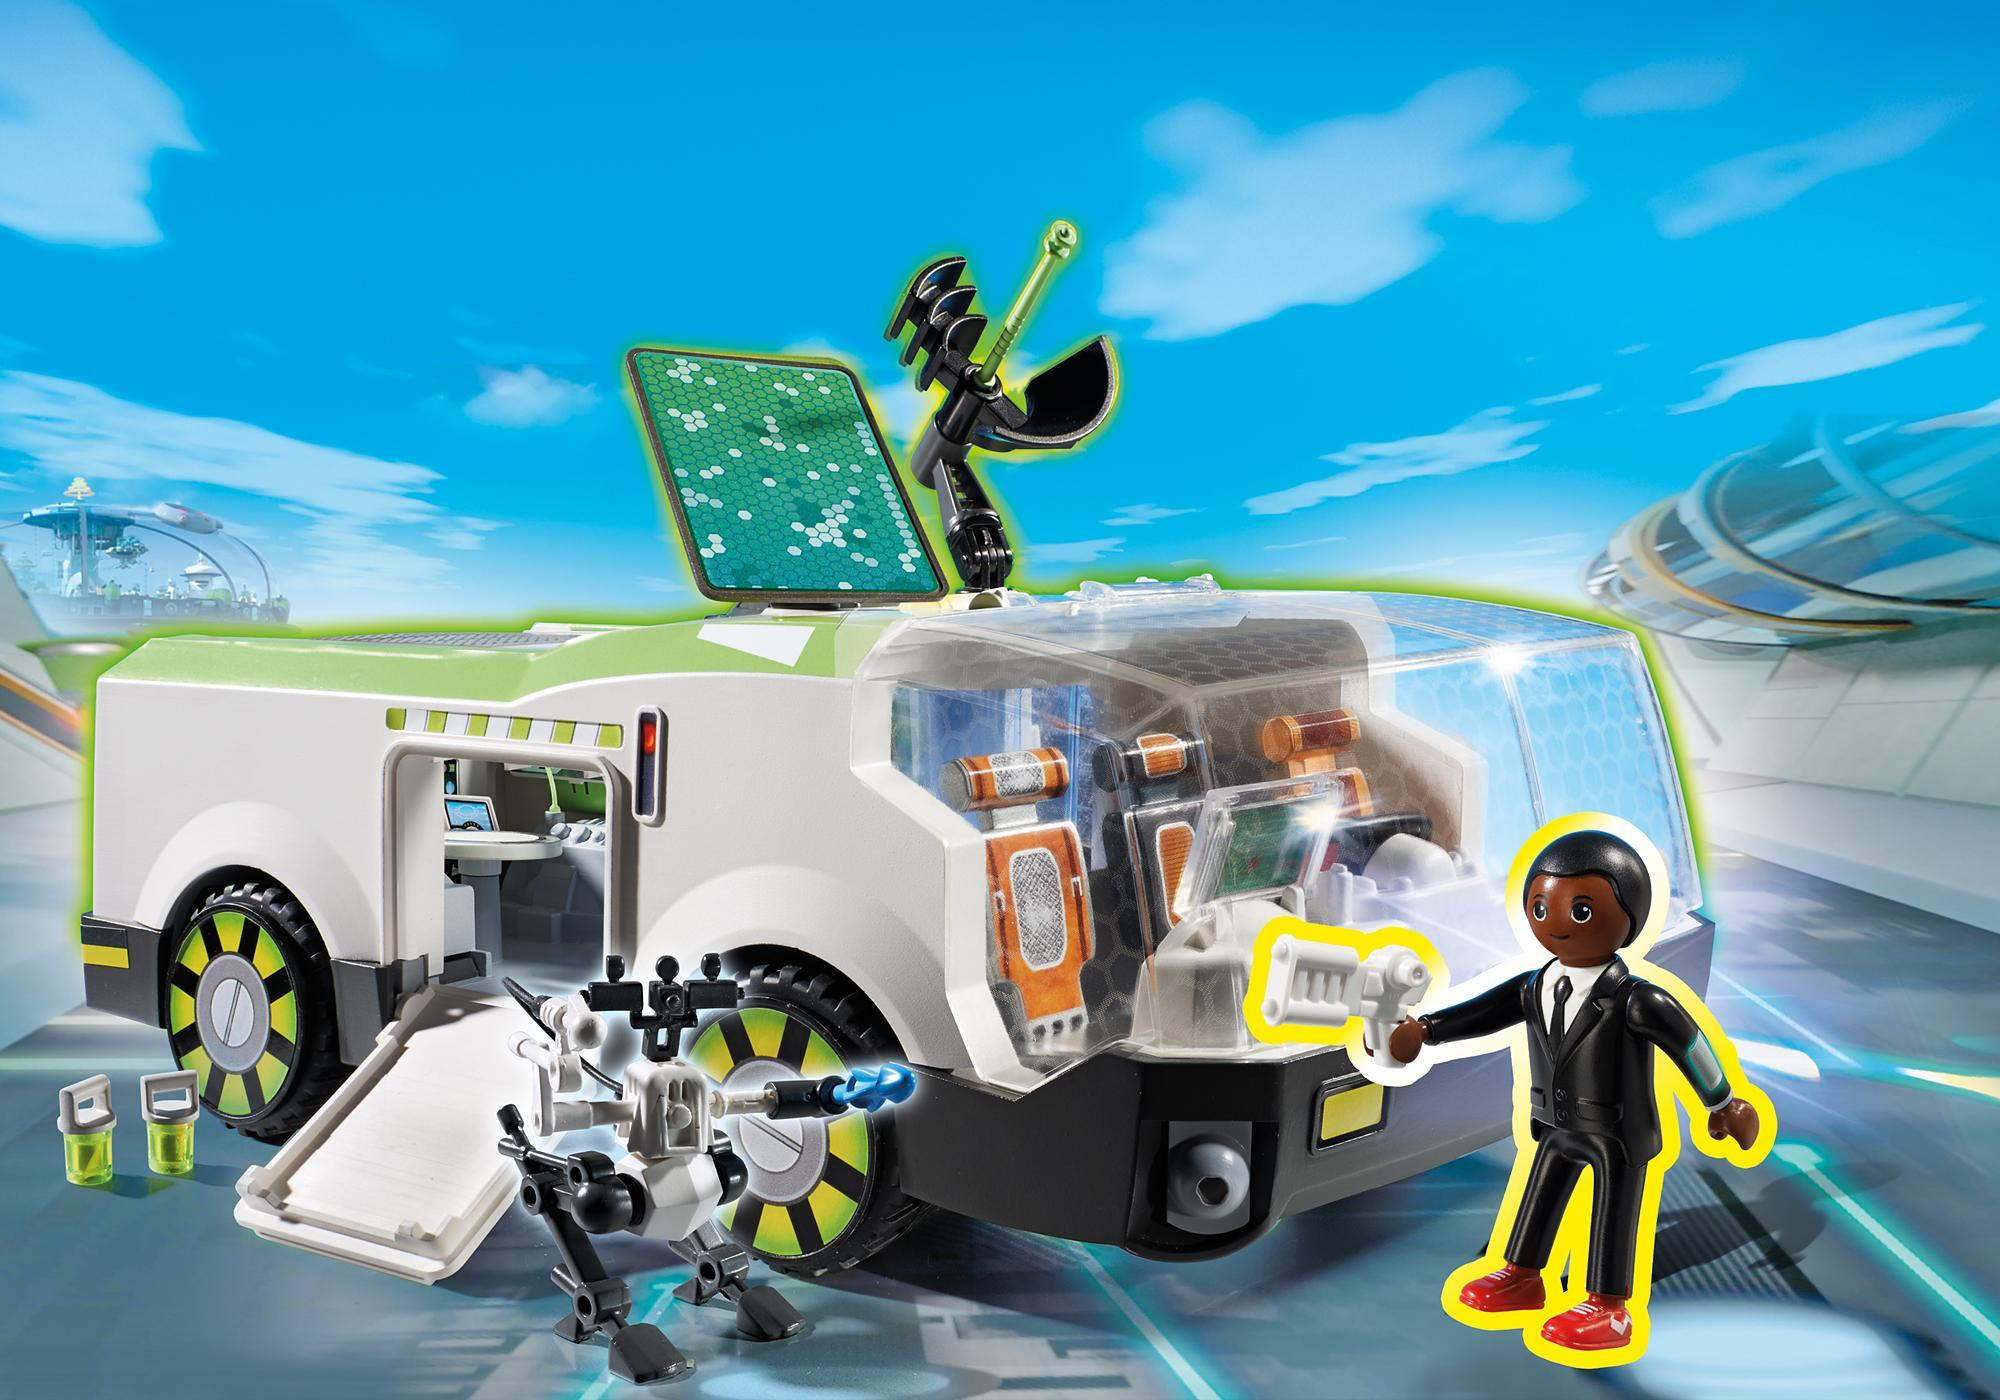 http://media.playmobil.com/i/playmobil/6692_product_detail/Техно Хамелеон с Джином